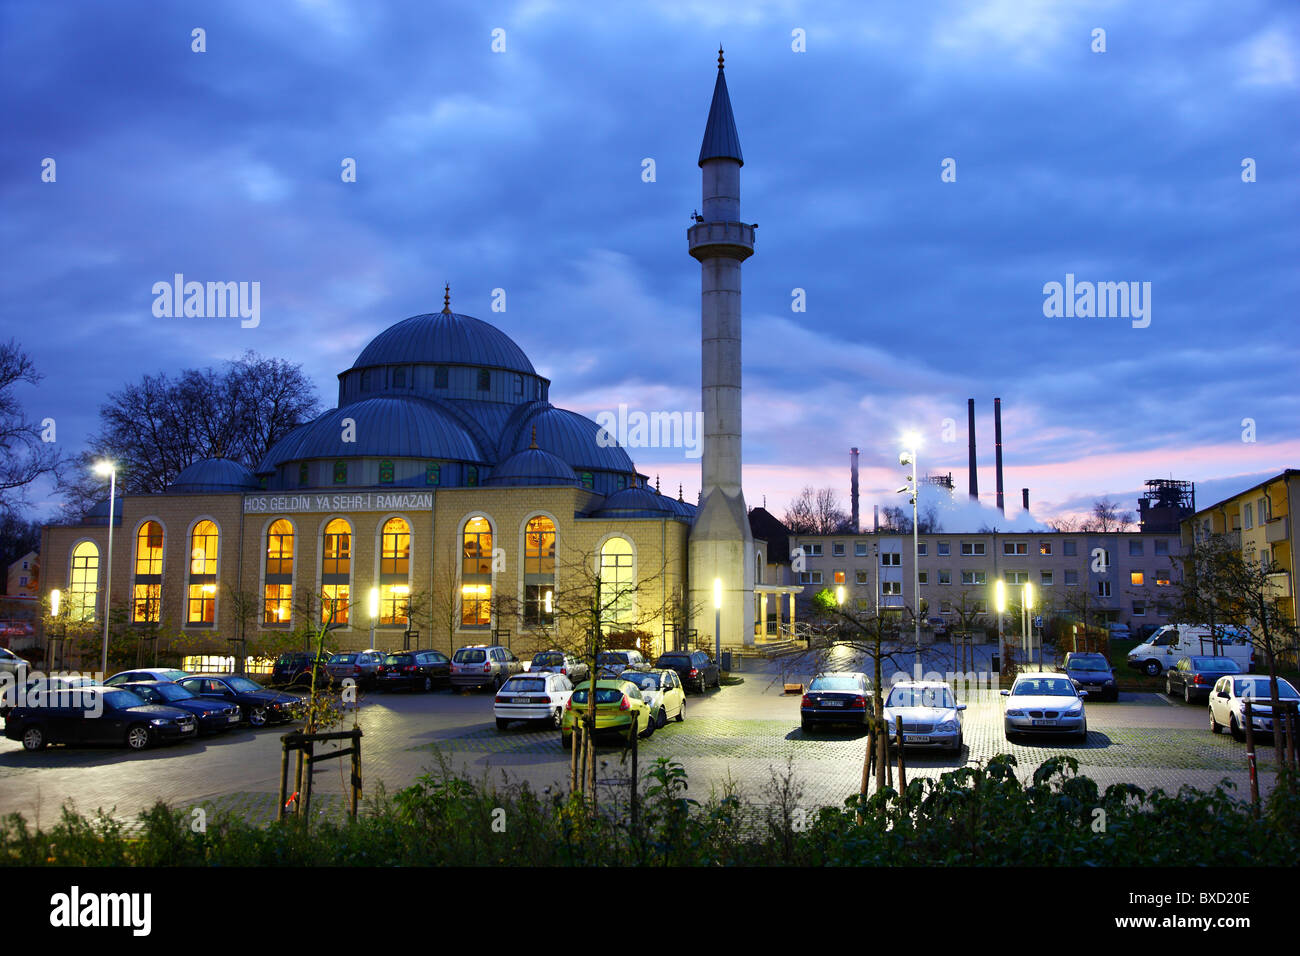 DITIB-Merkez mosque in Duisburg, Ruhr area, Germany. Biggest mosque in Germany. Run by the Turkish DITIB organization. - Stock Image